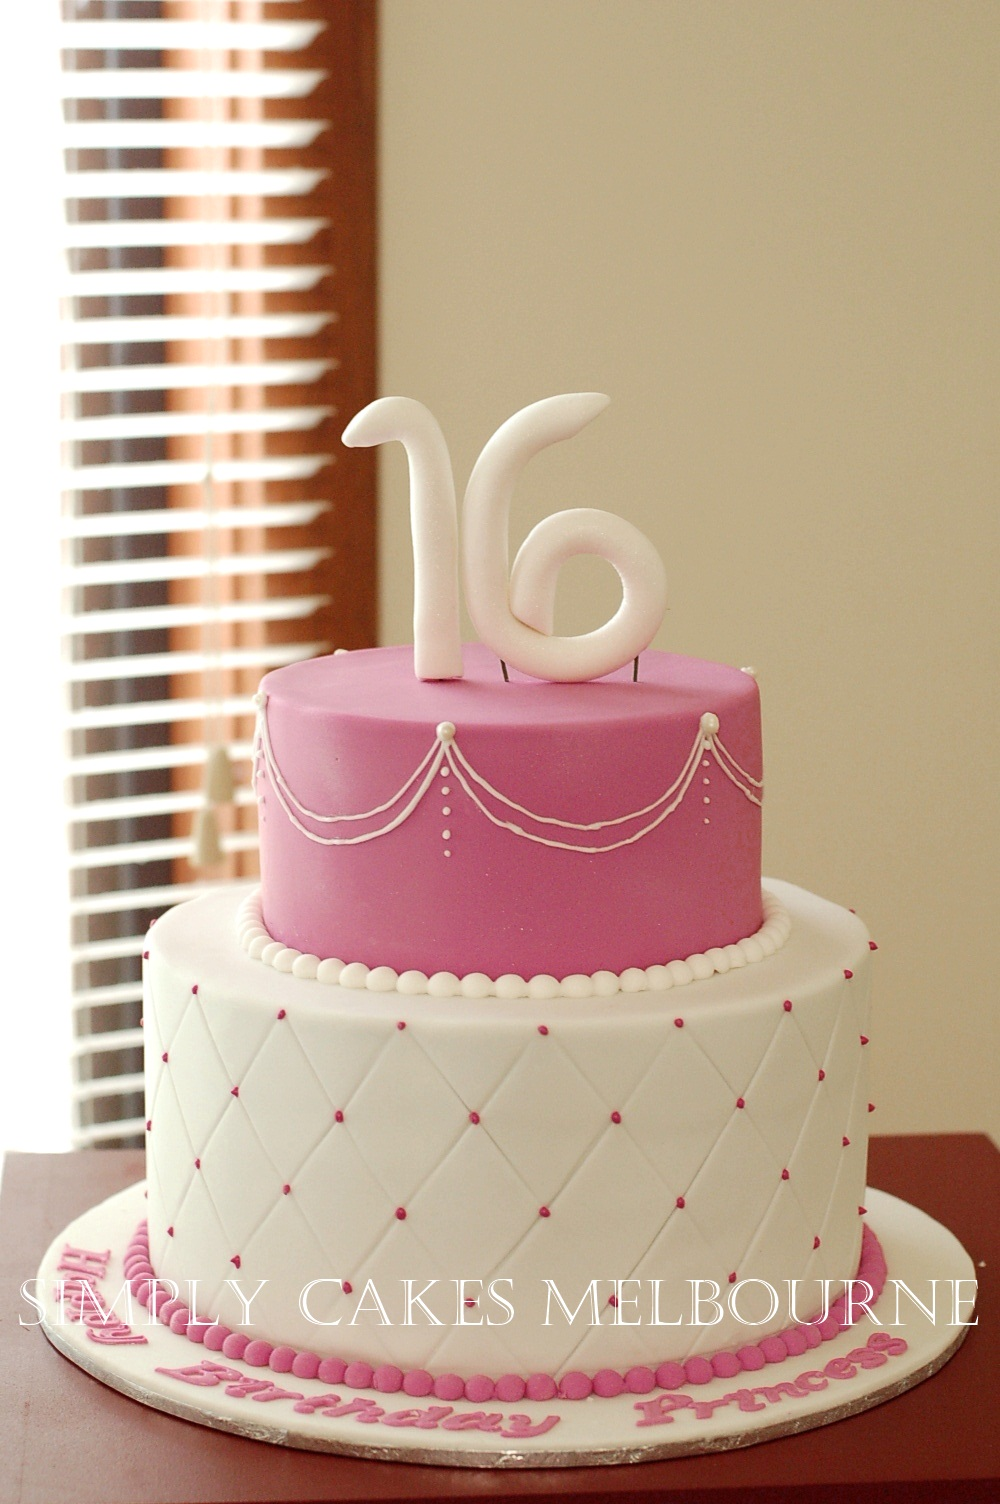 Simply Cakes Melbourne Princess Cake Themed For 16th Birthday